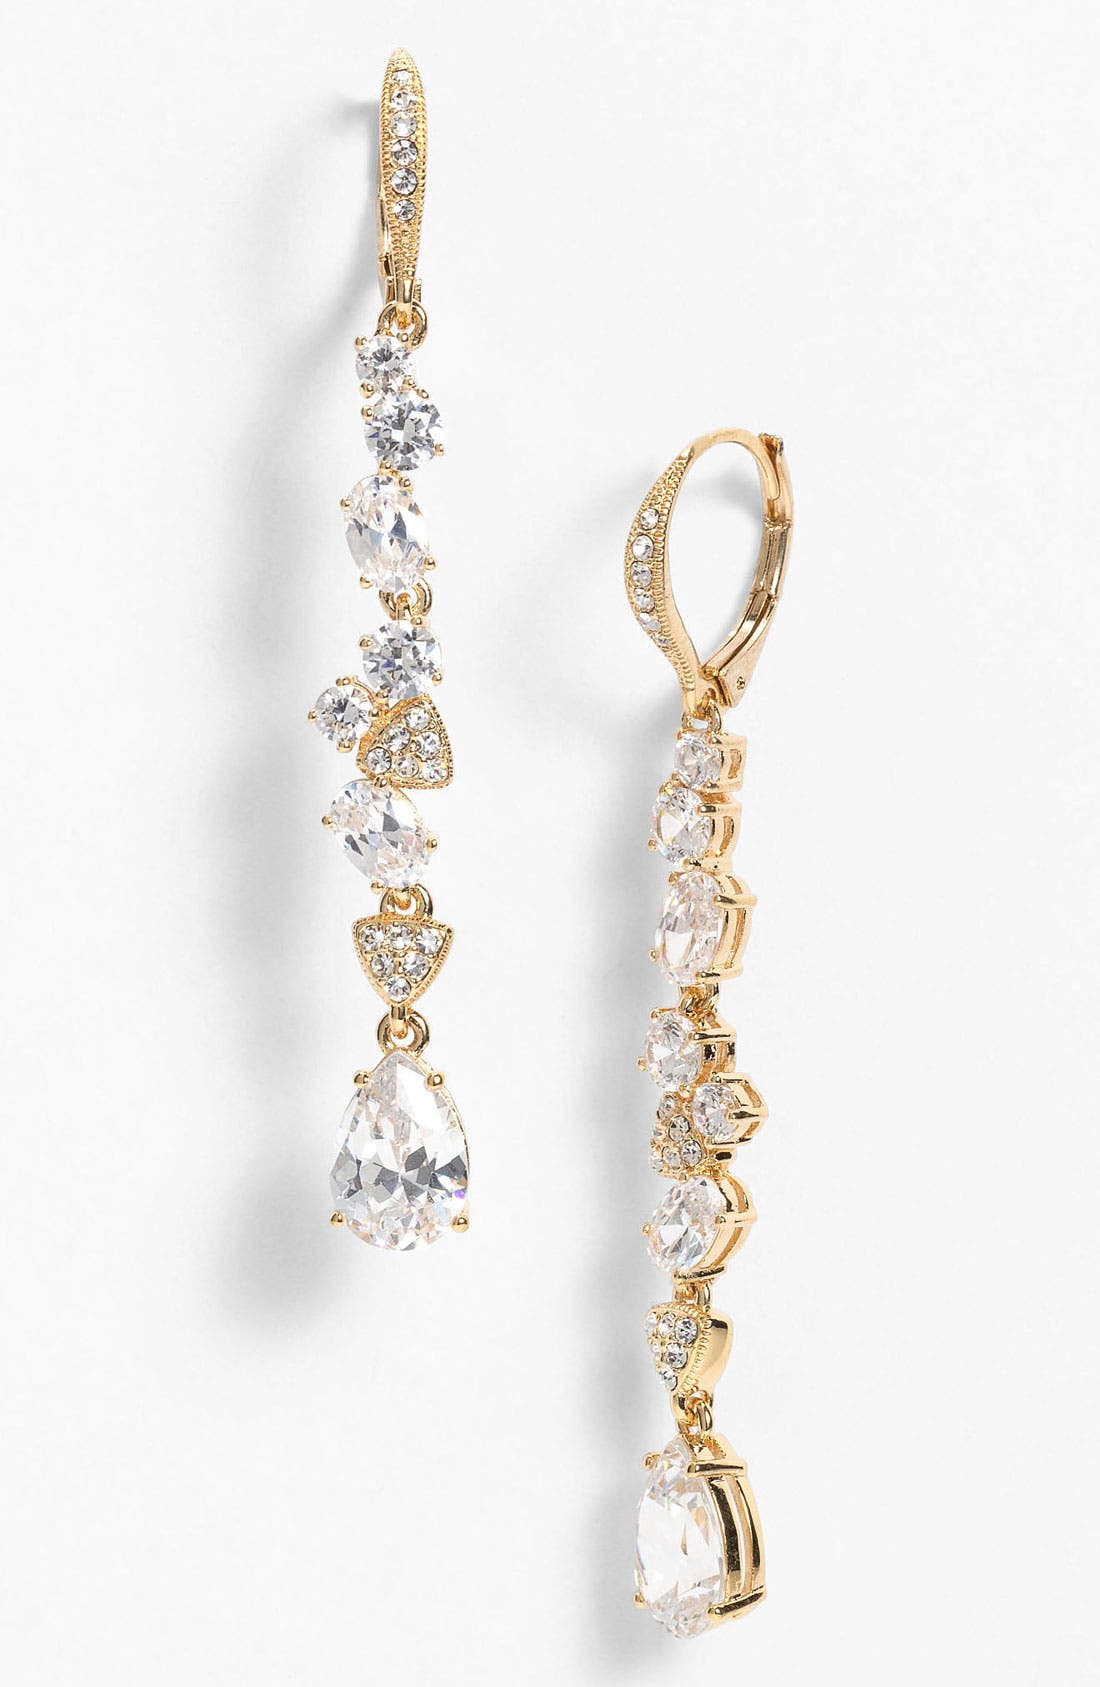 Alternate Image 1 Selected - Nadri Cubic Zirconia Cluster Linear Earrings (Nordstrom Exclusive)